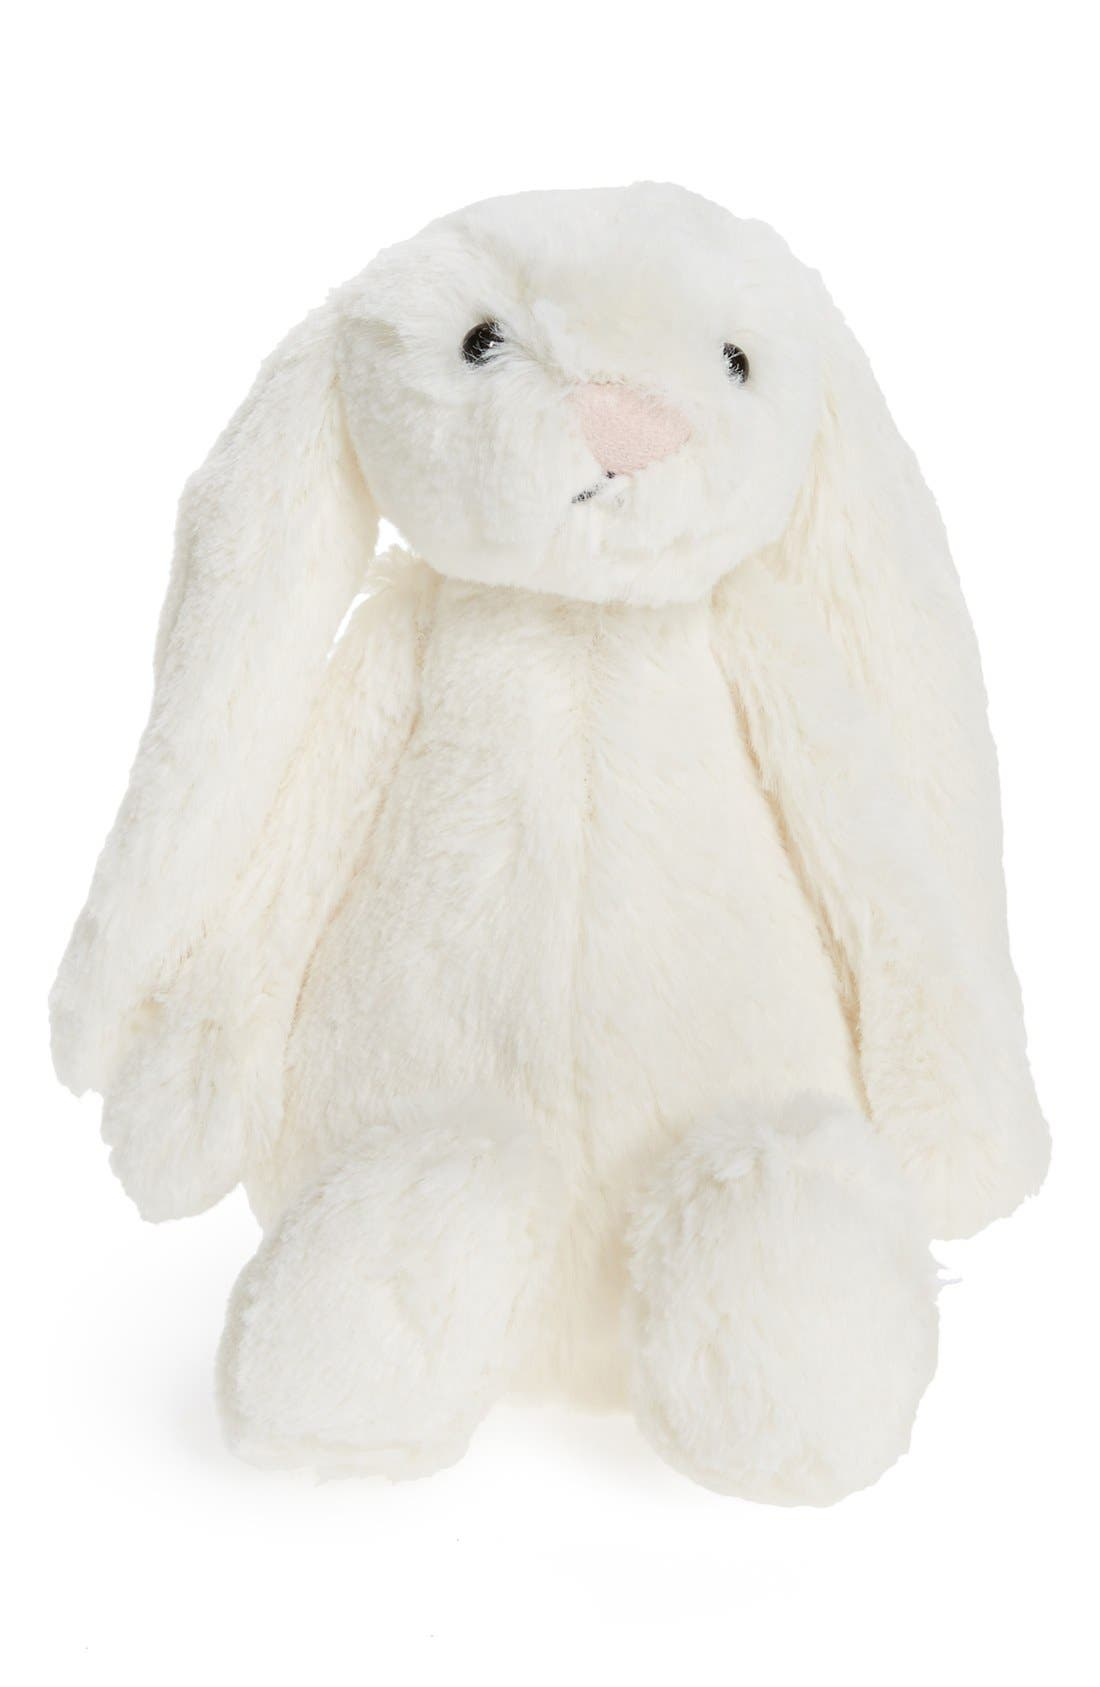 Alternate Image 1 Selected - Jellycat 'Small Bashful Bunny' Stuffed Animal